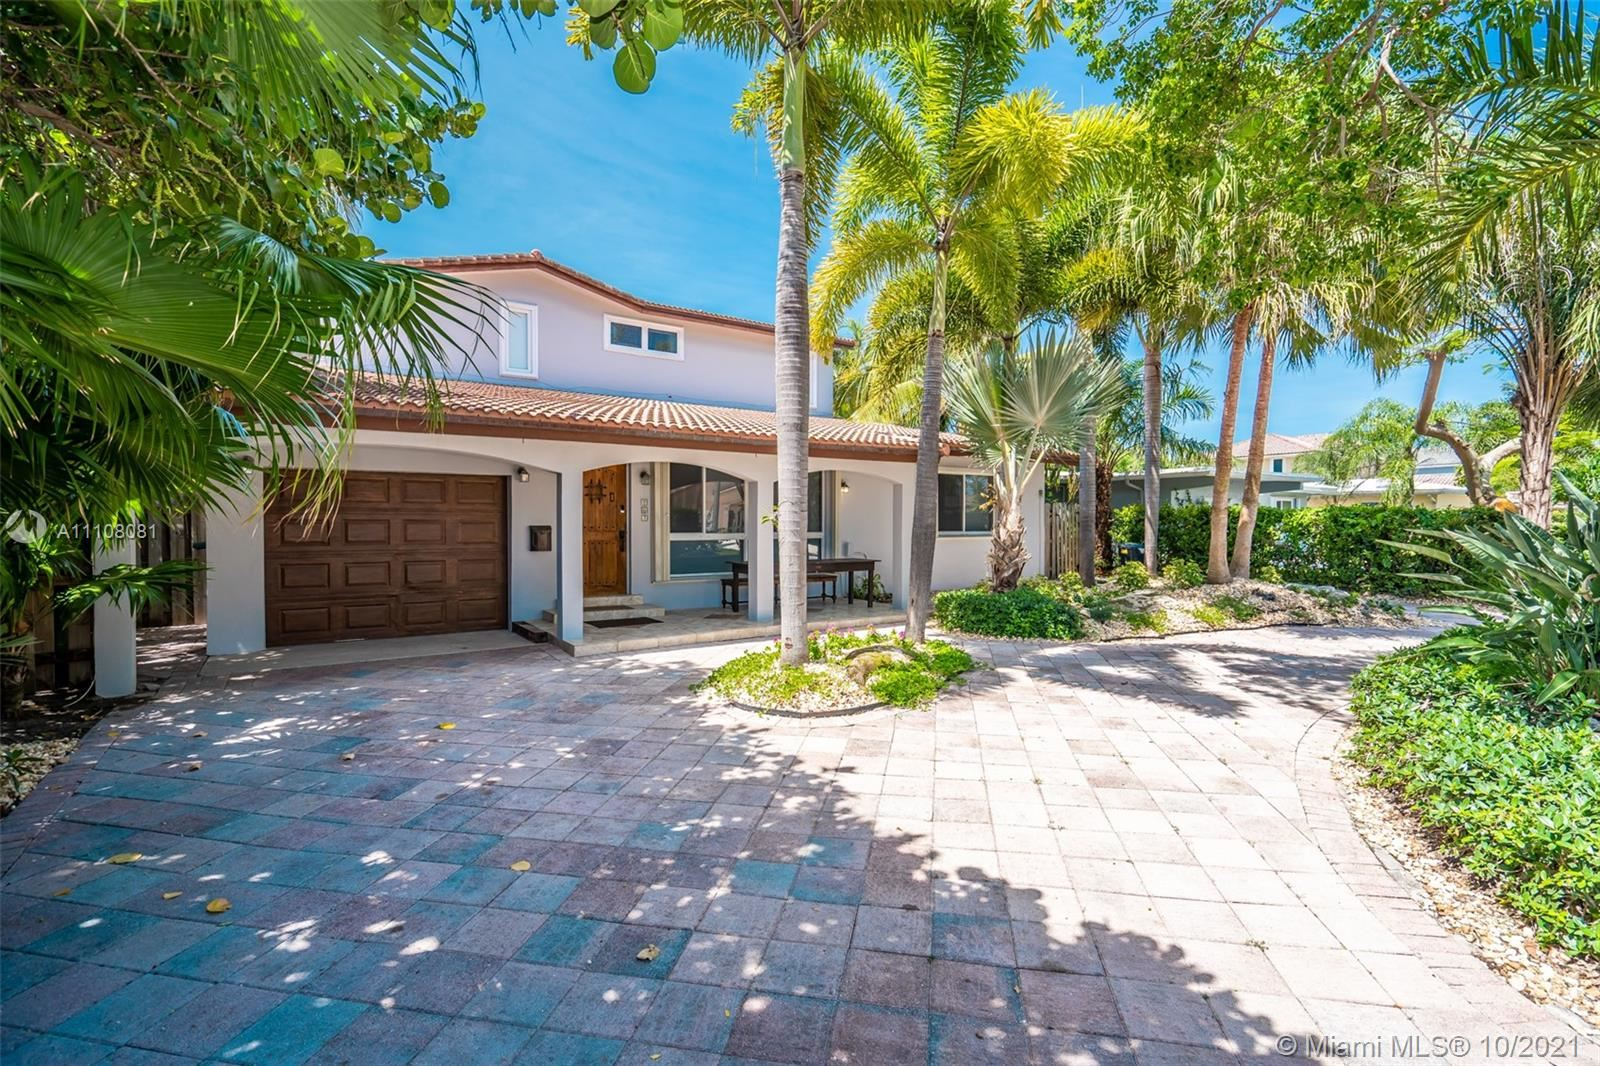 Photo of 267 Avalon Ave, Lauderdale By The Sea, FL 33308 (MLS # A11108081)